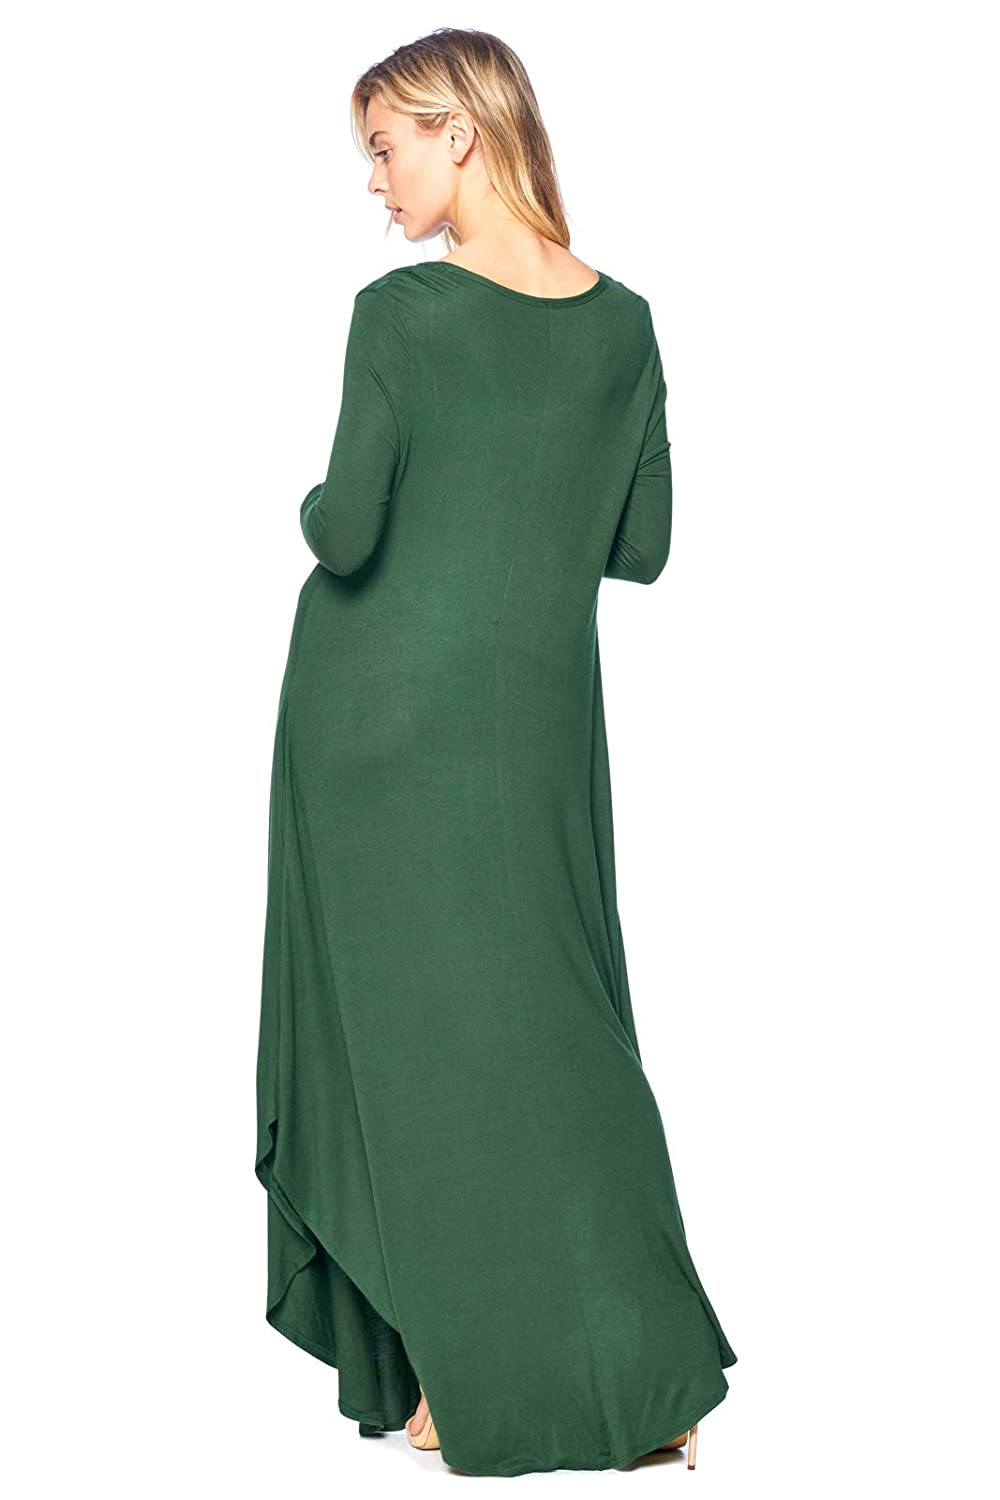 bdc0d9bef0b Where To Find Long Sleeve Maxi Dresses - Data Dynamic AG